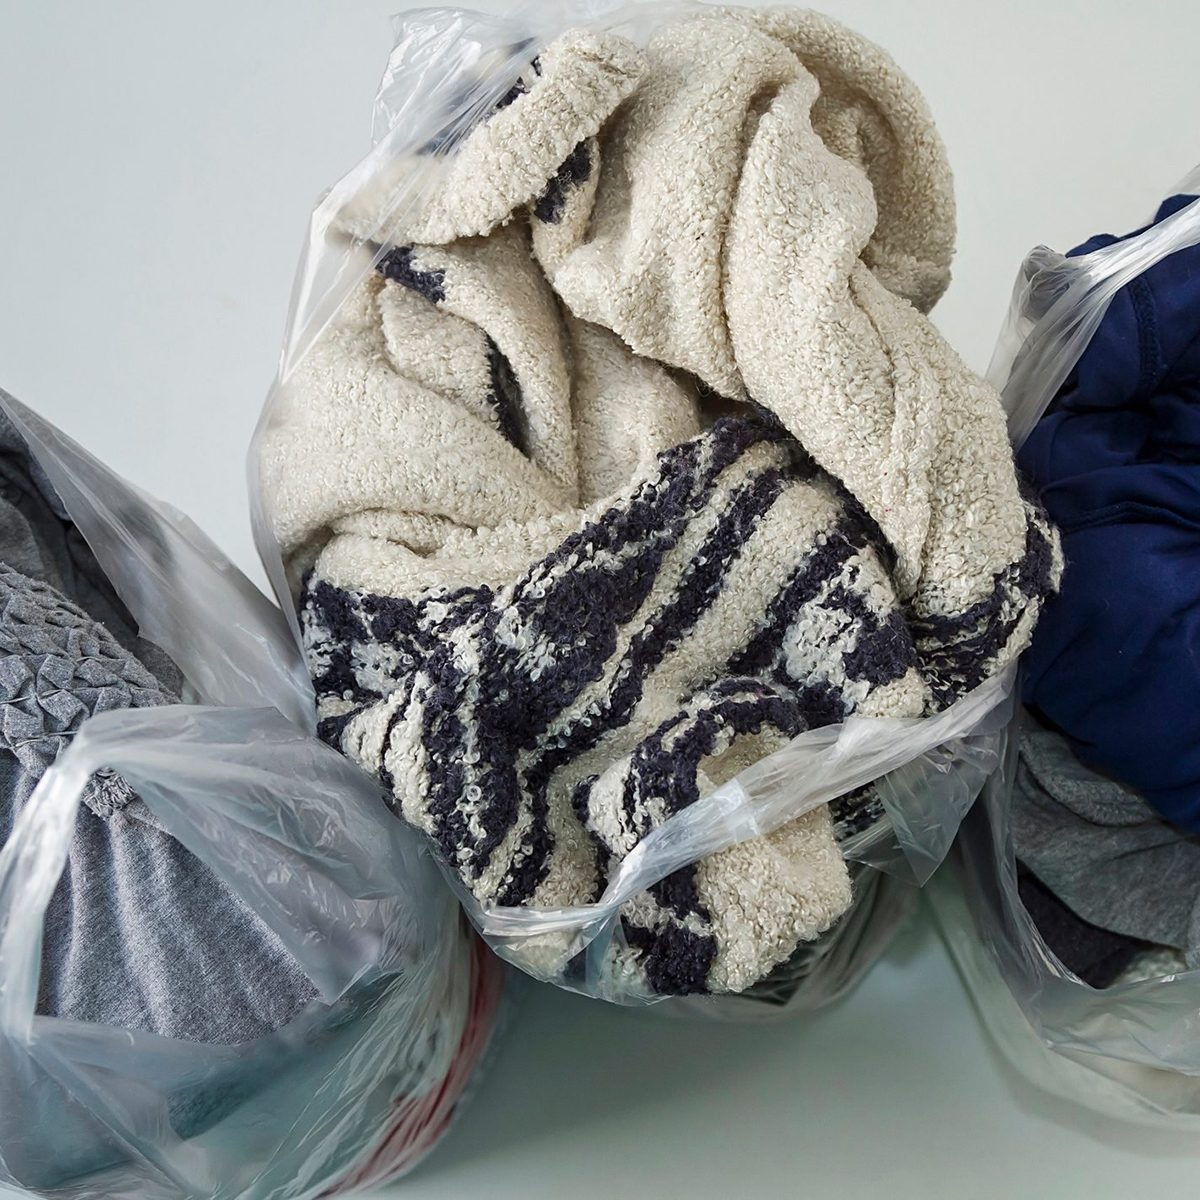 Everyday clothes packed in plastic bags